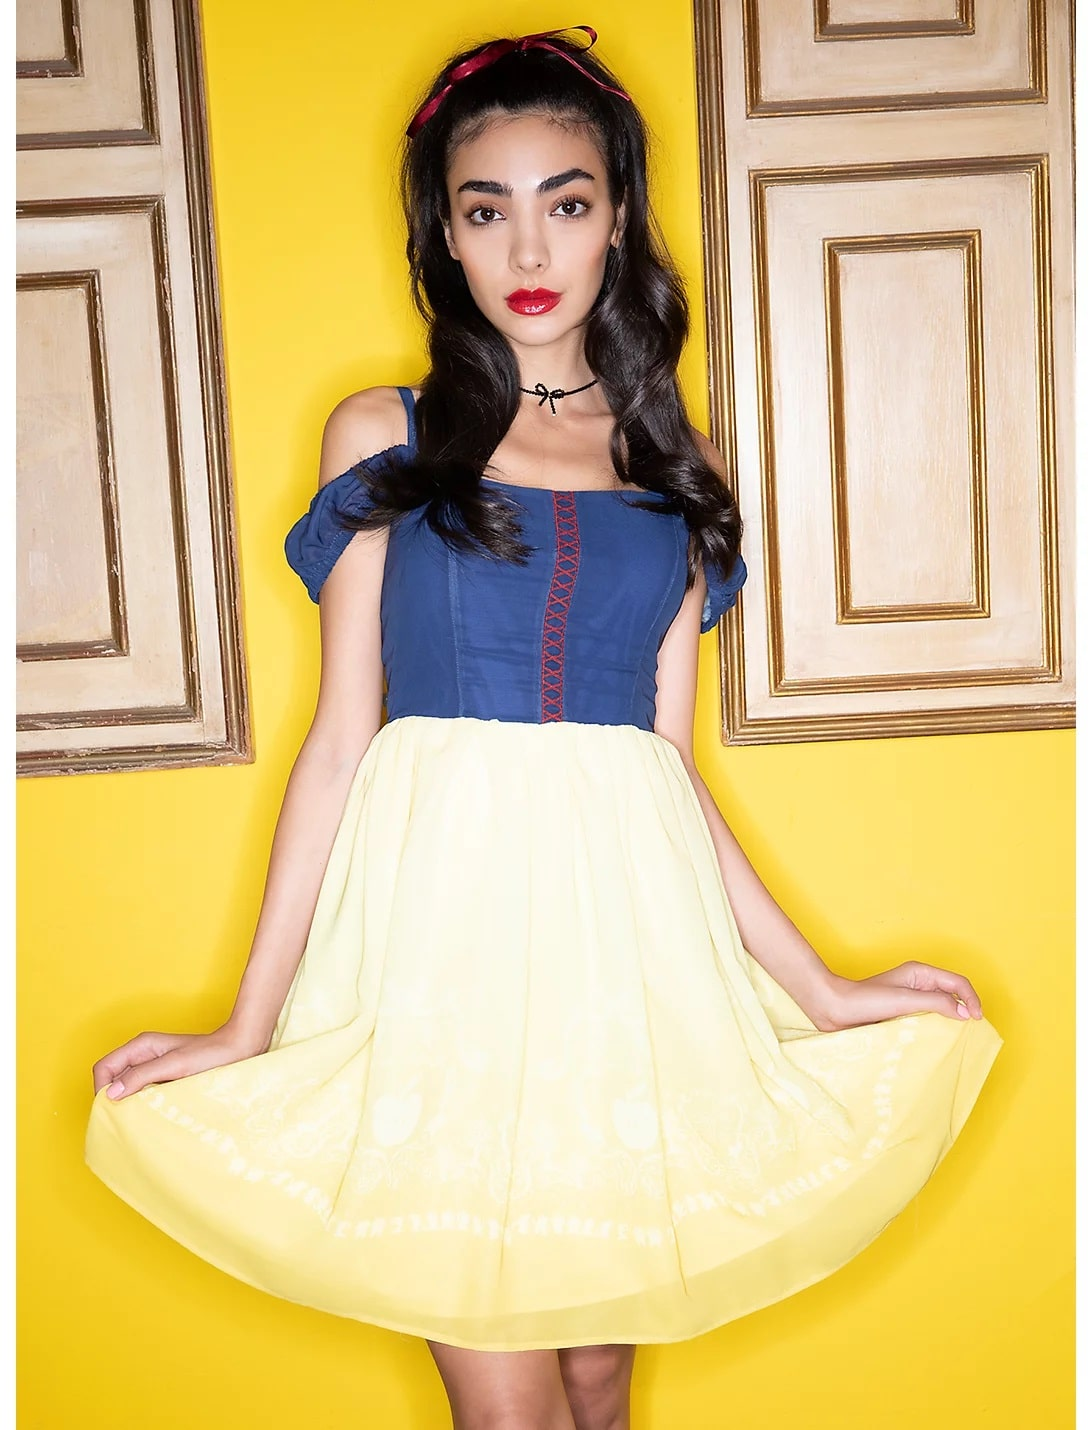 Her Universe Disney Princess dress collection is now available at Hot Topic 23